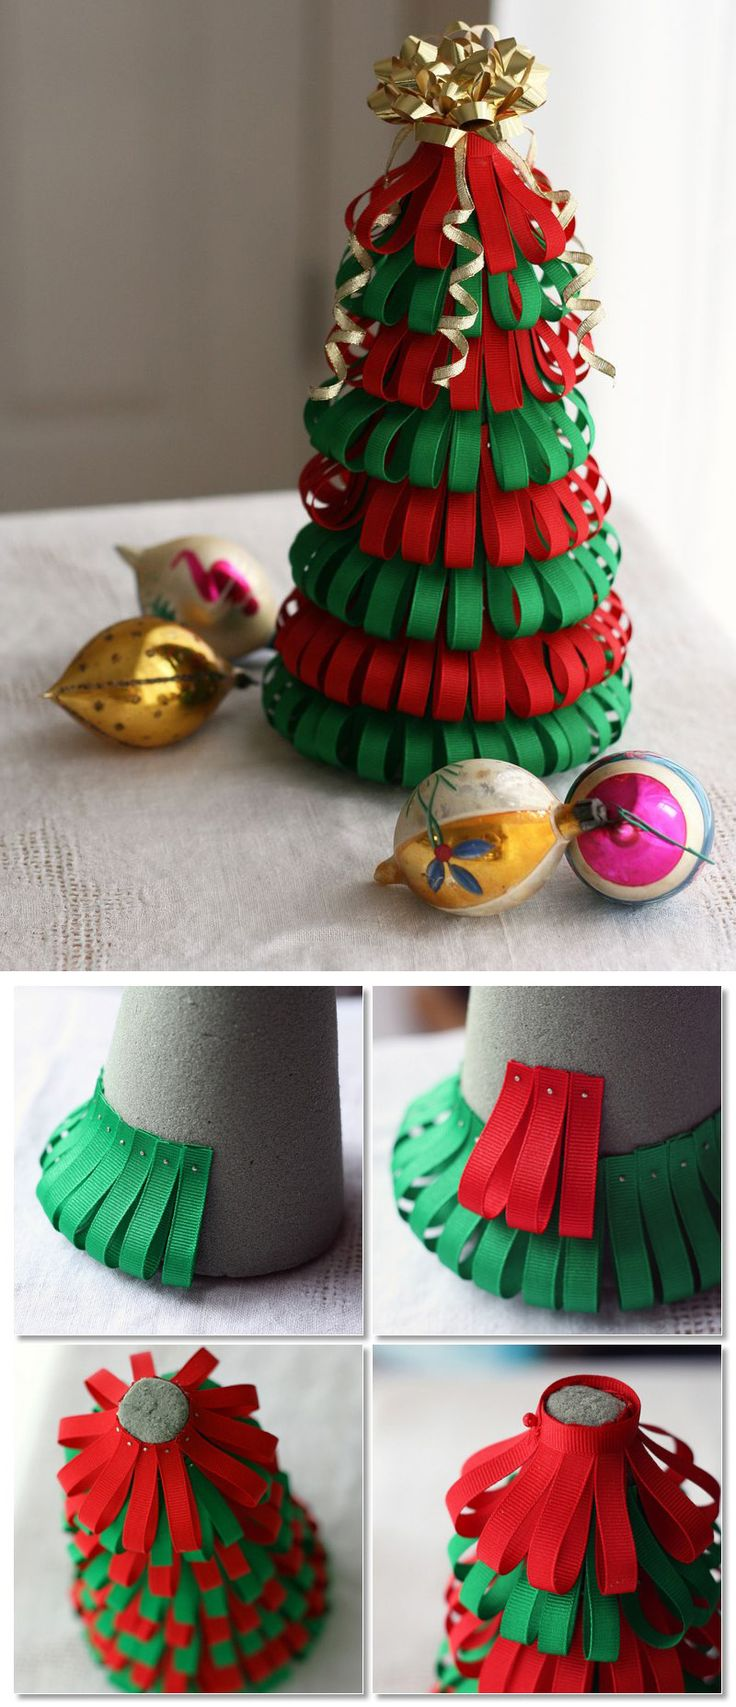 DIY Ribbon Christmas Tree - would be cute with glitter ribbon too #holiday #decoration #craft: